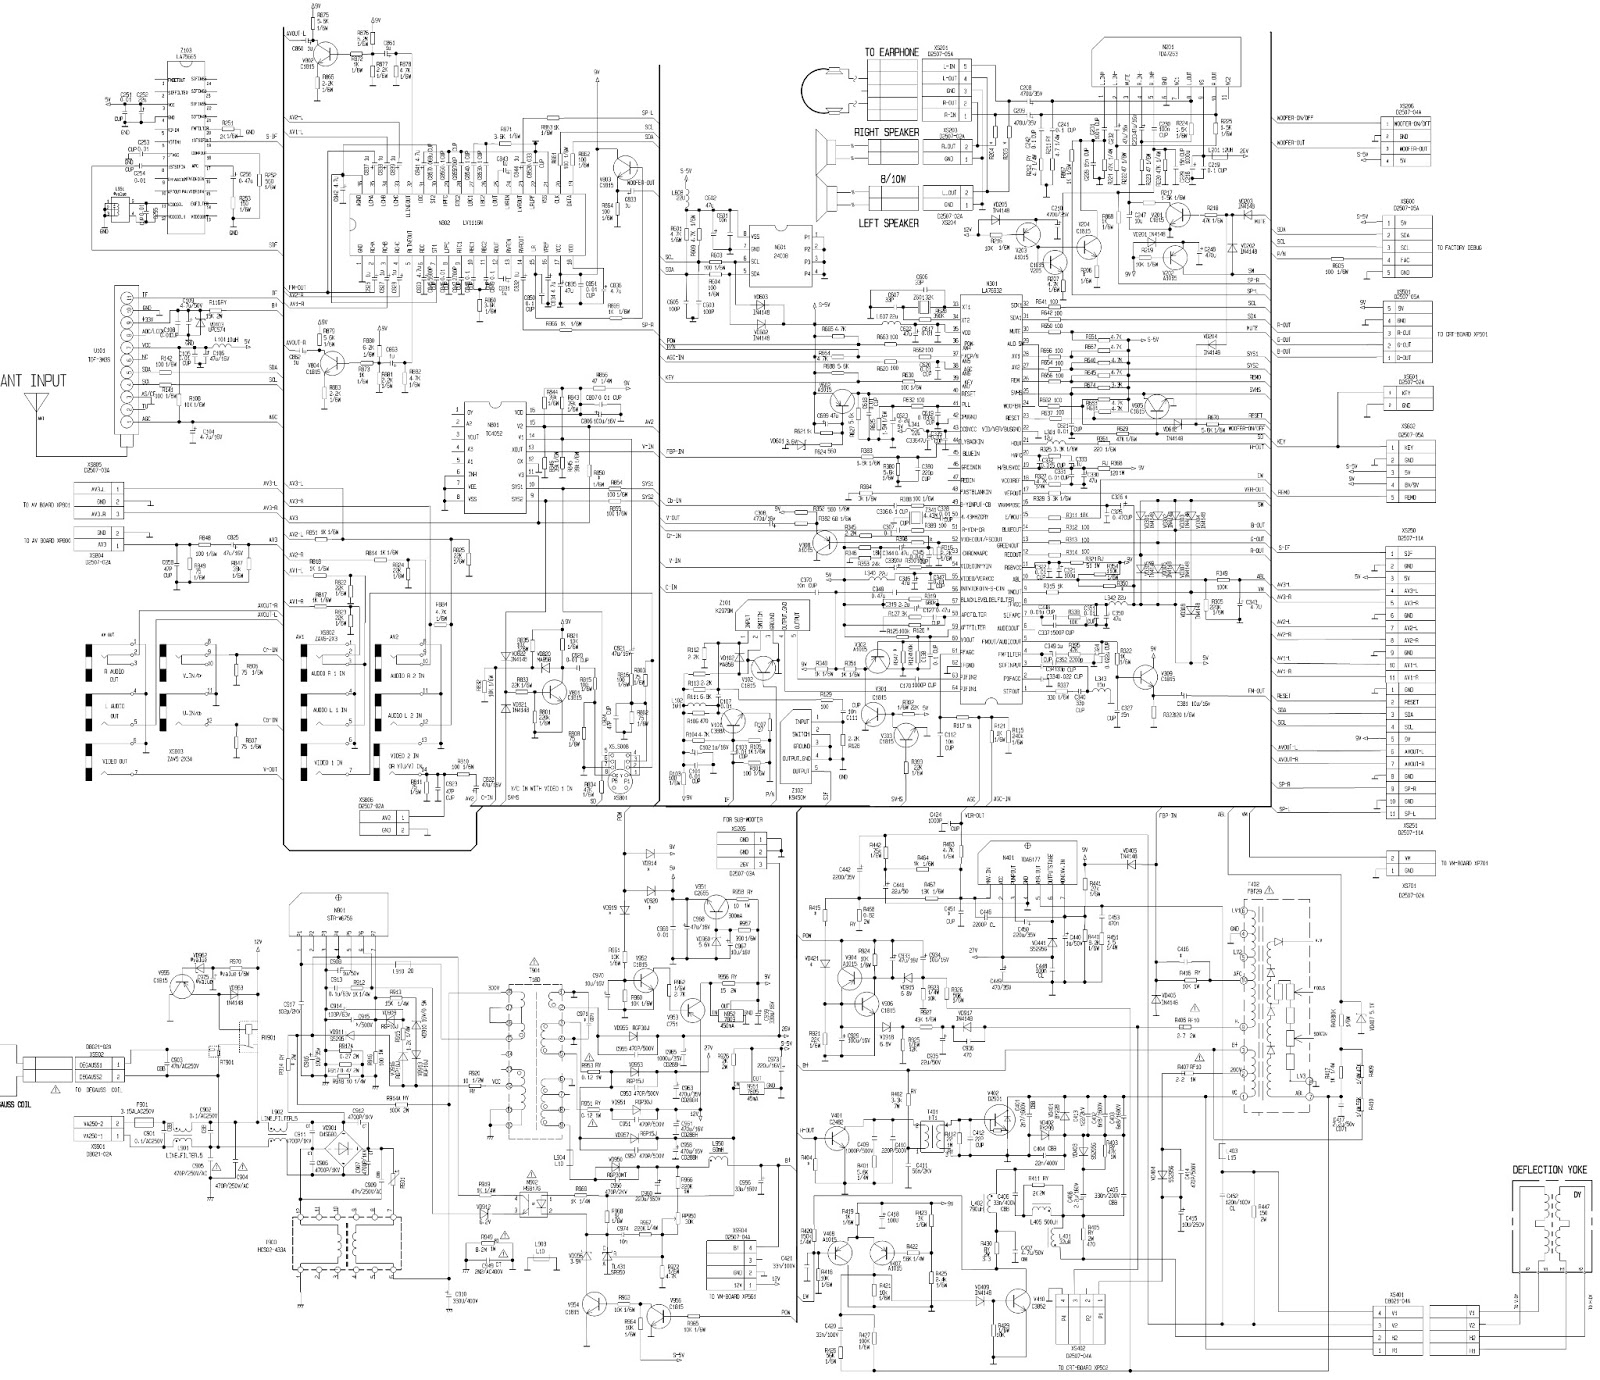 konka kp-2962sz2 - schematic  circuit diagram